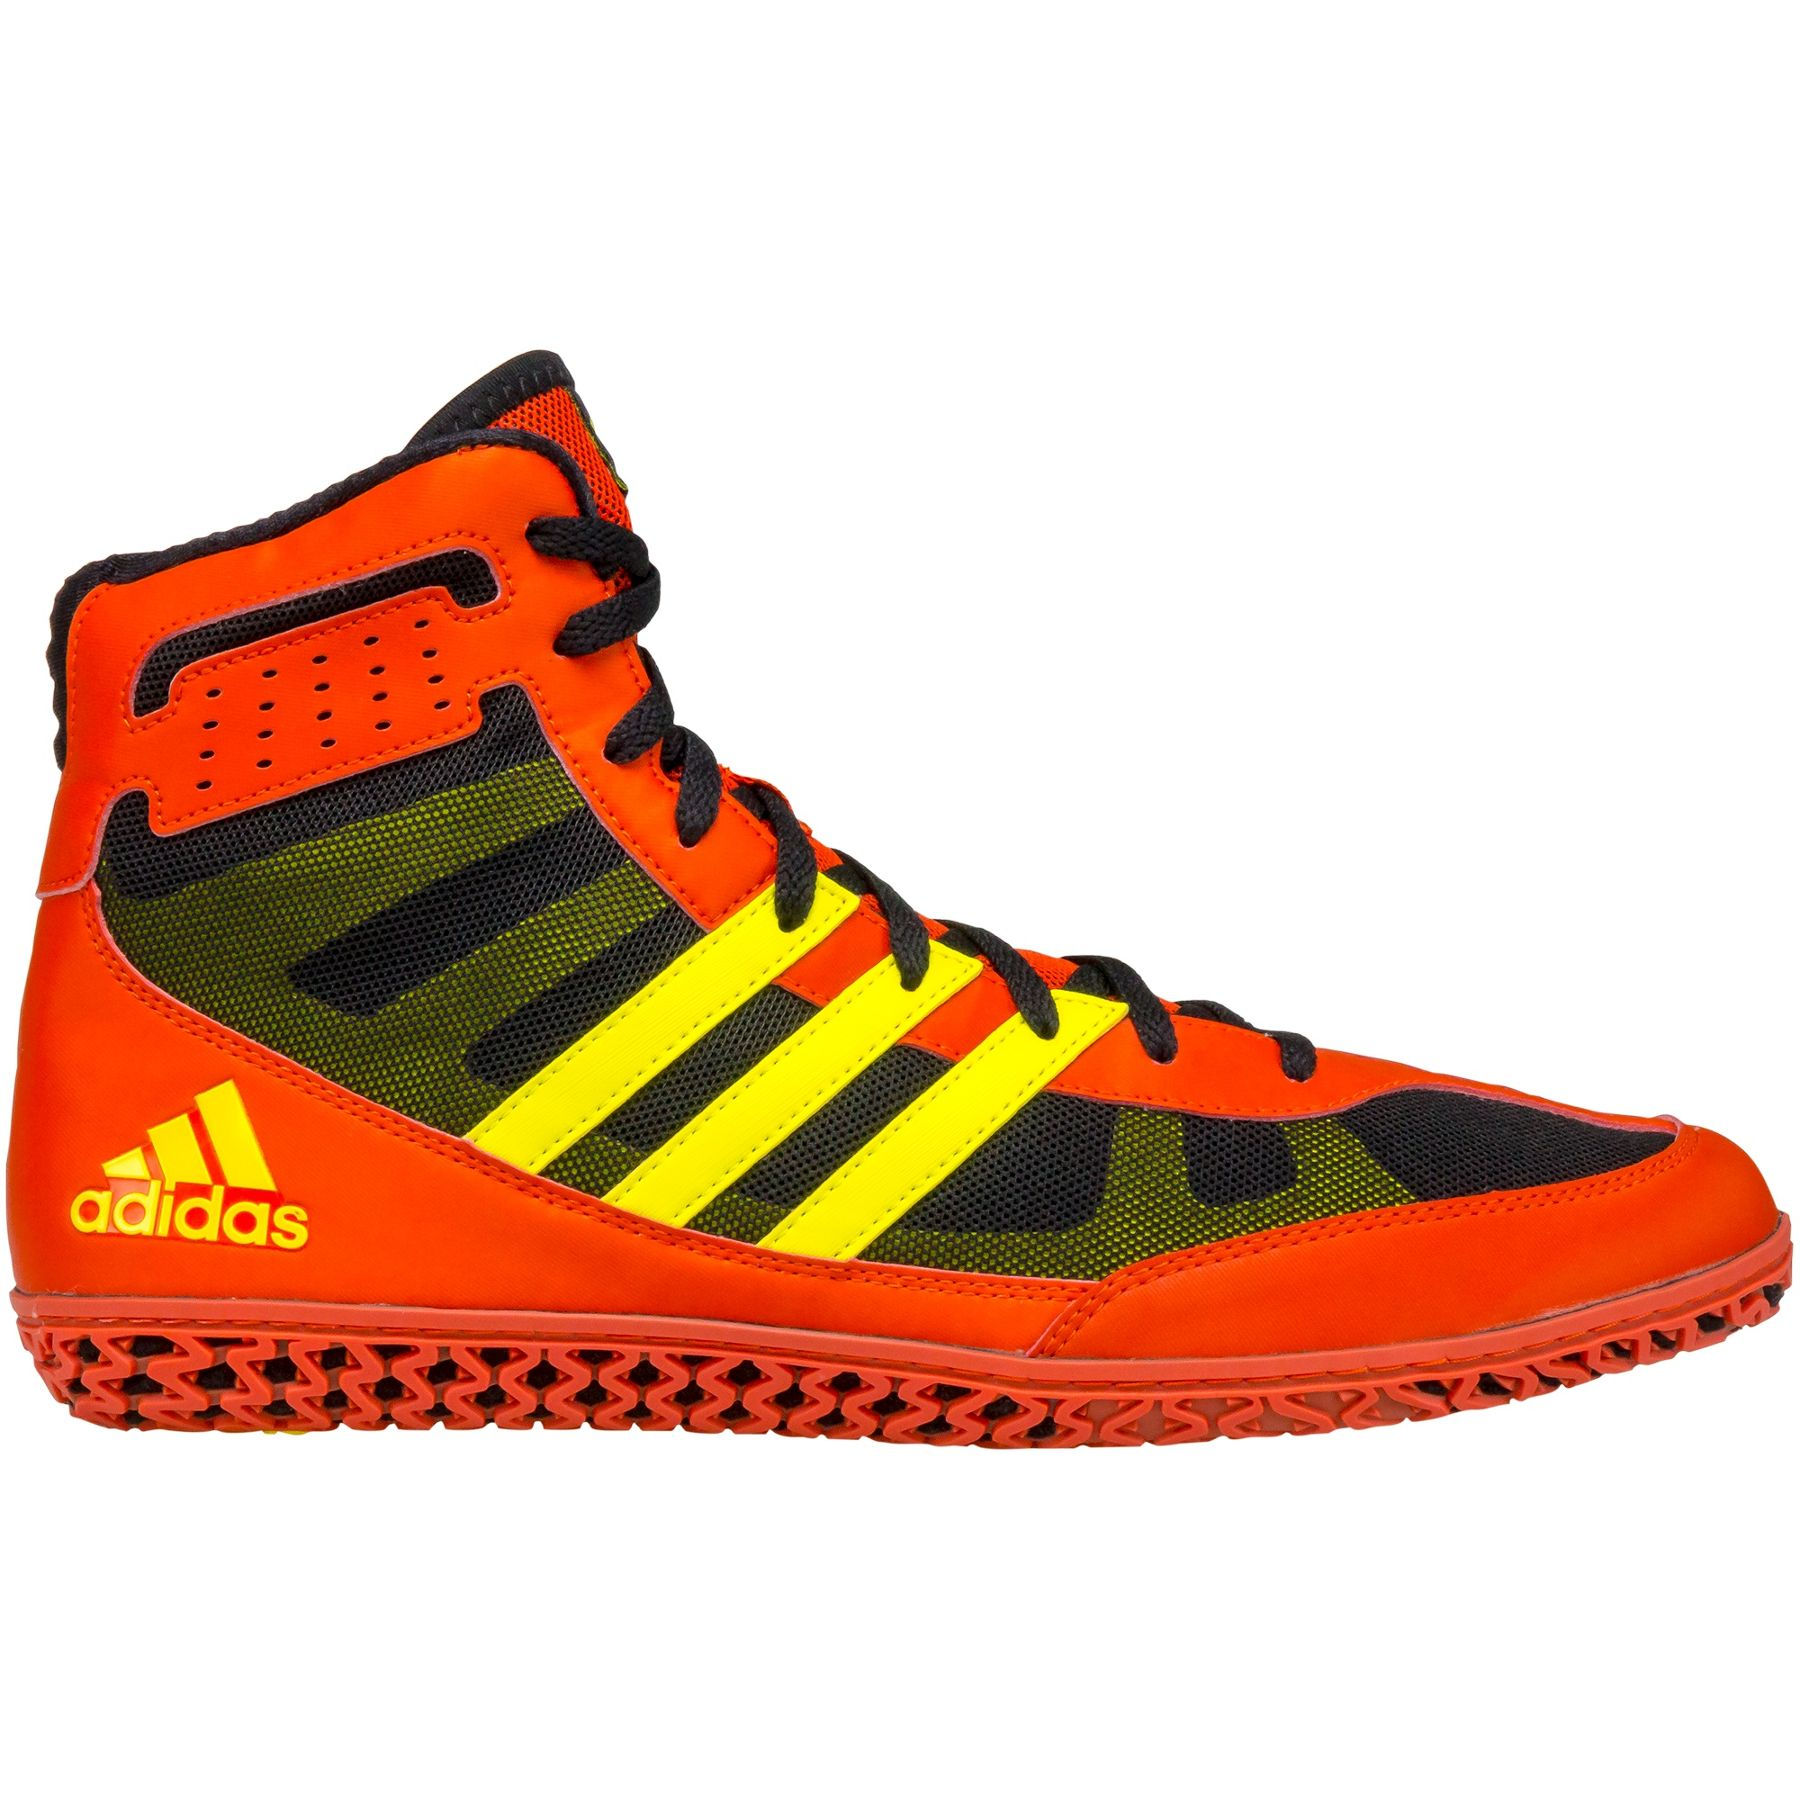 Youth Size   Wrestling Shoes